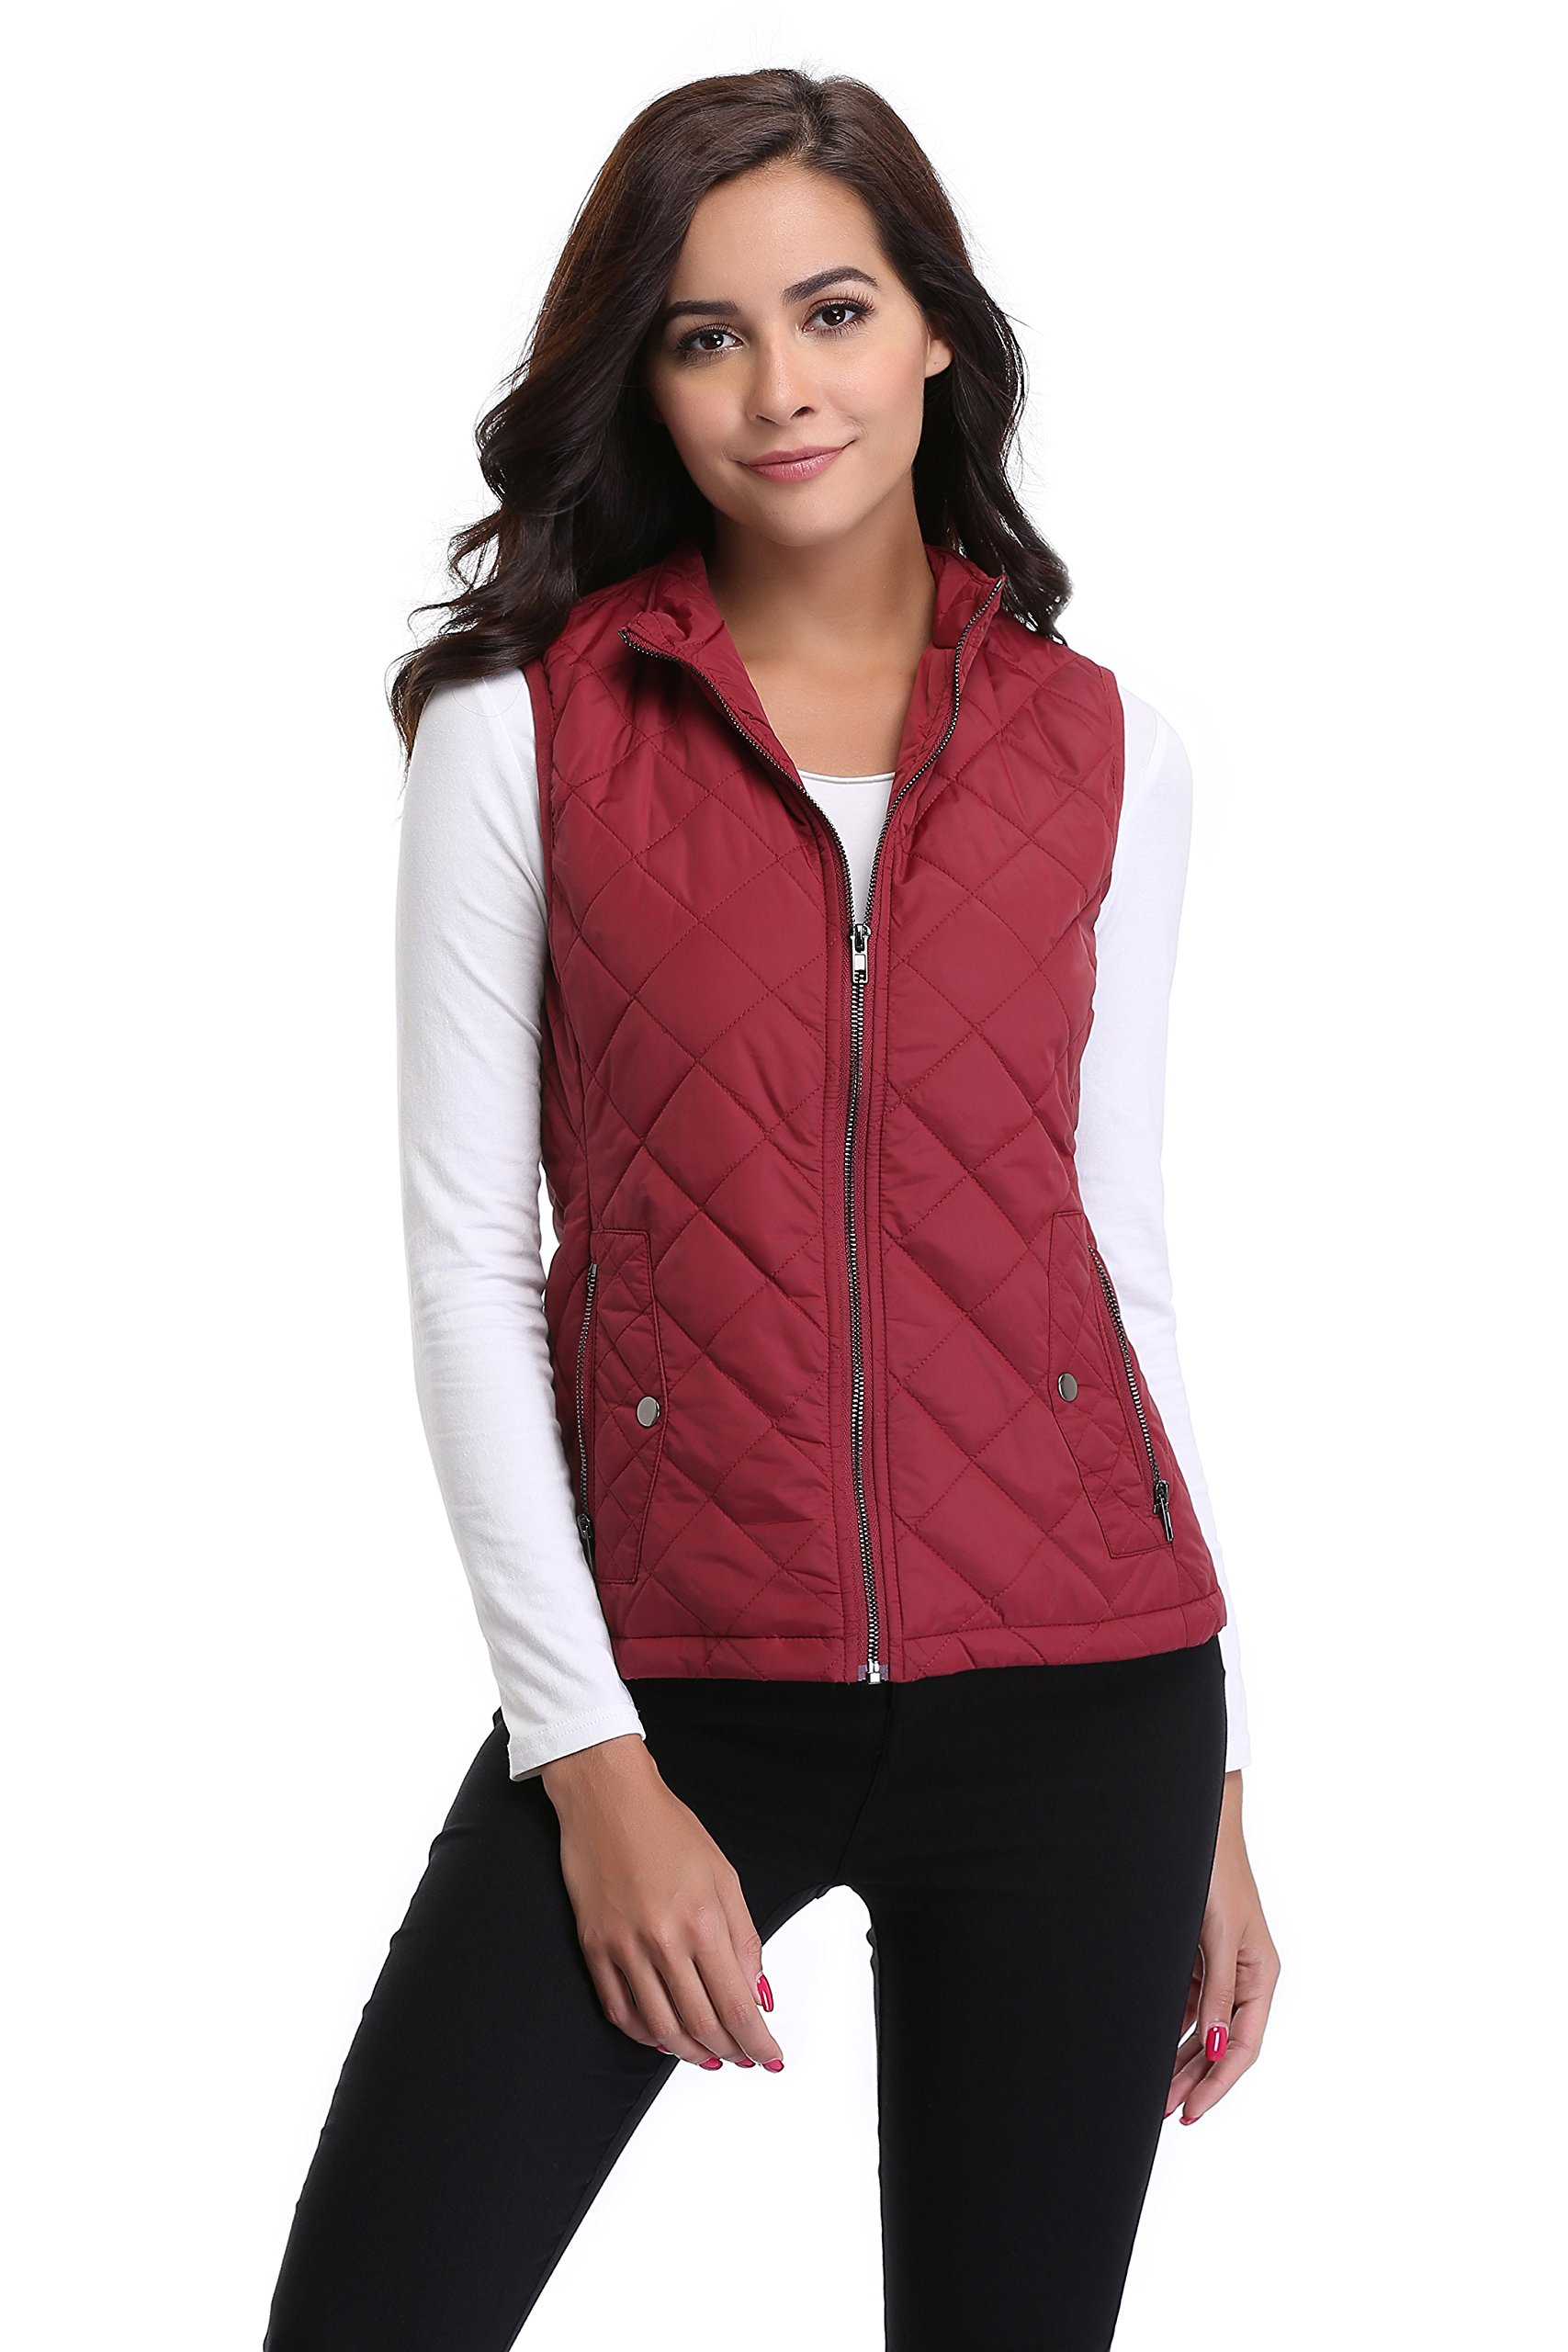 MISS MOLY Women Lightweight Quilted Padded Vest Stand Collar Zip Up Front Gilet Quilted,Red,X-Large